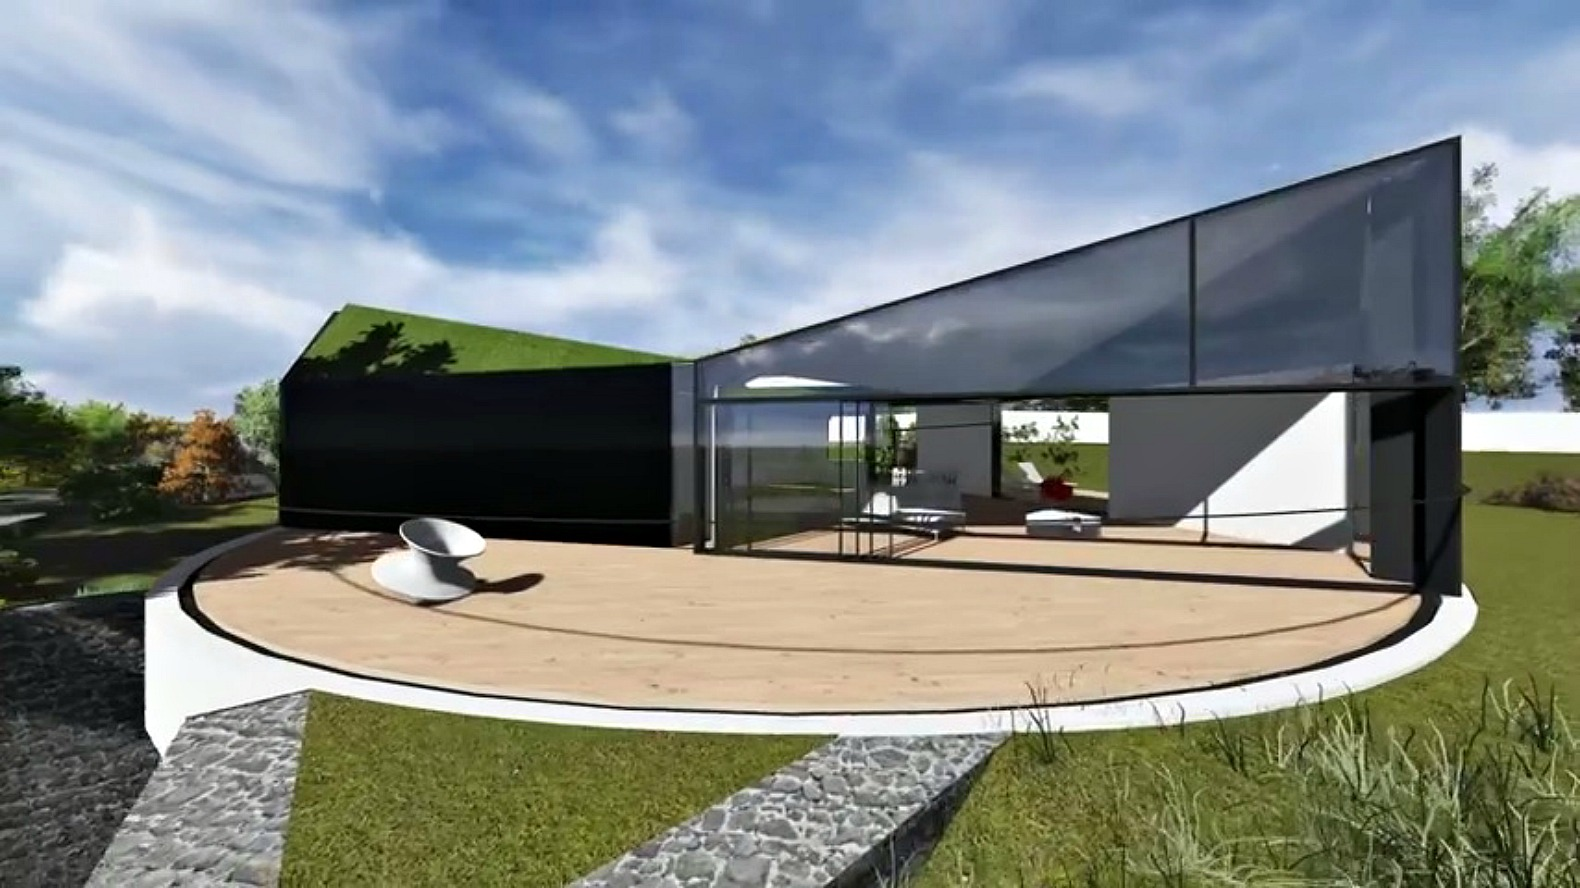 D Haus Company Unveils Stunning Home Design With Rotating